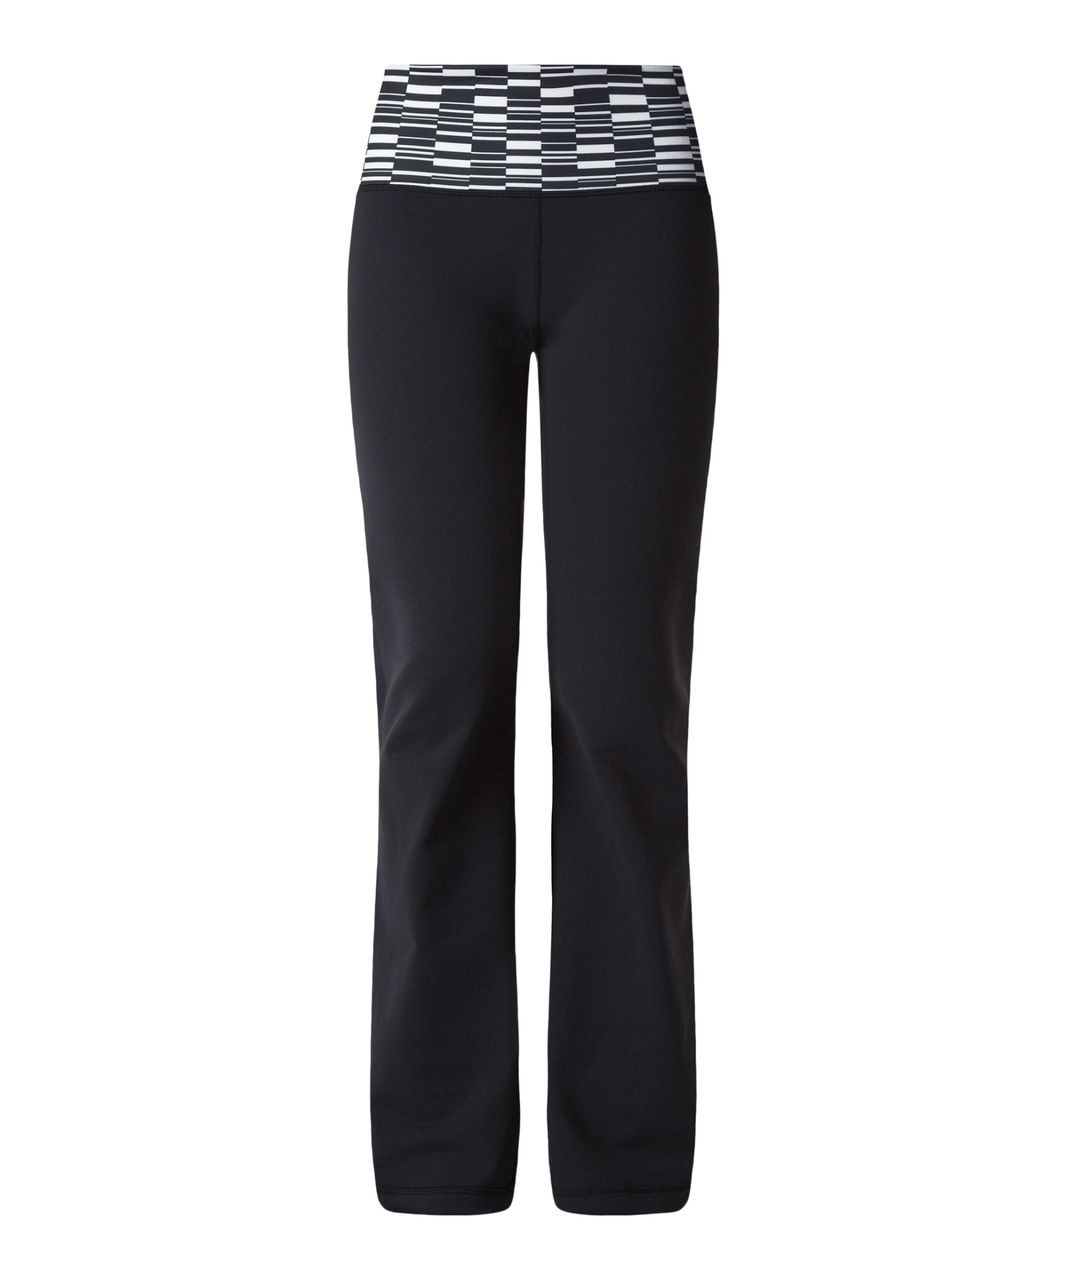 Lululemon Groove Pant III (Regular) - Black / Ying Yang Stripe White Black